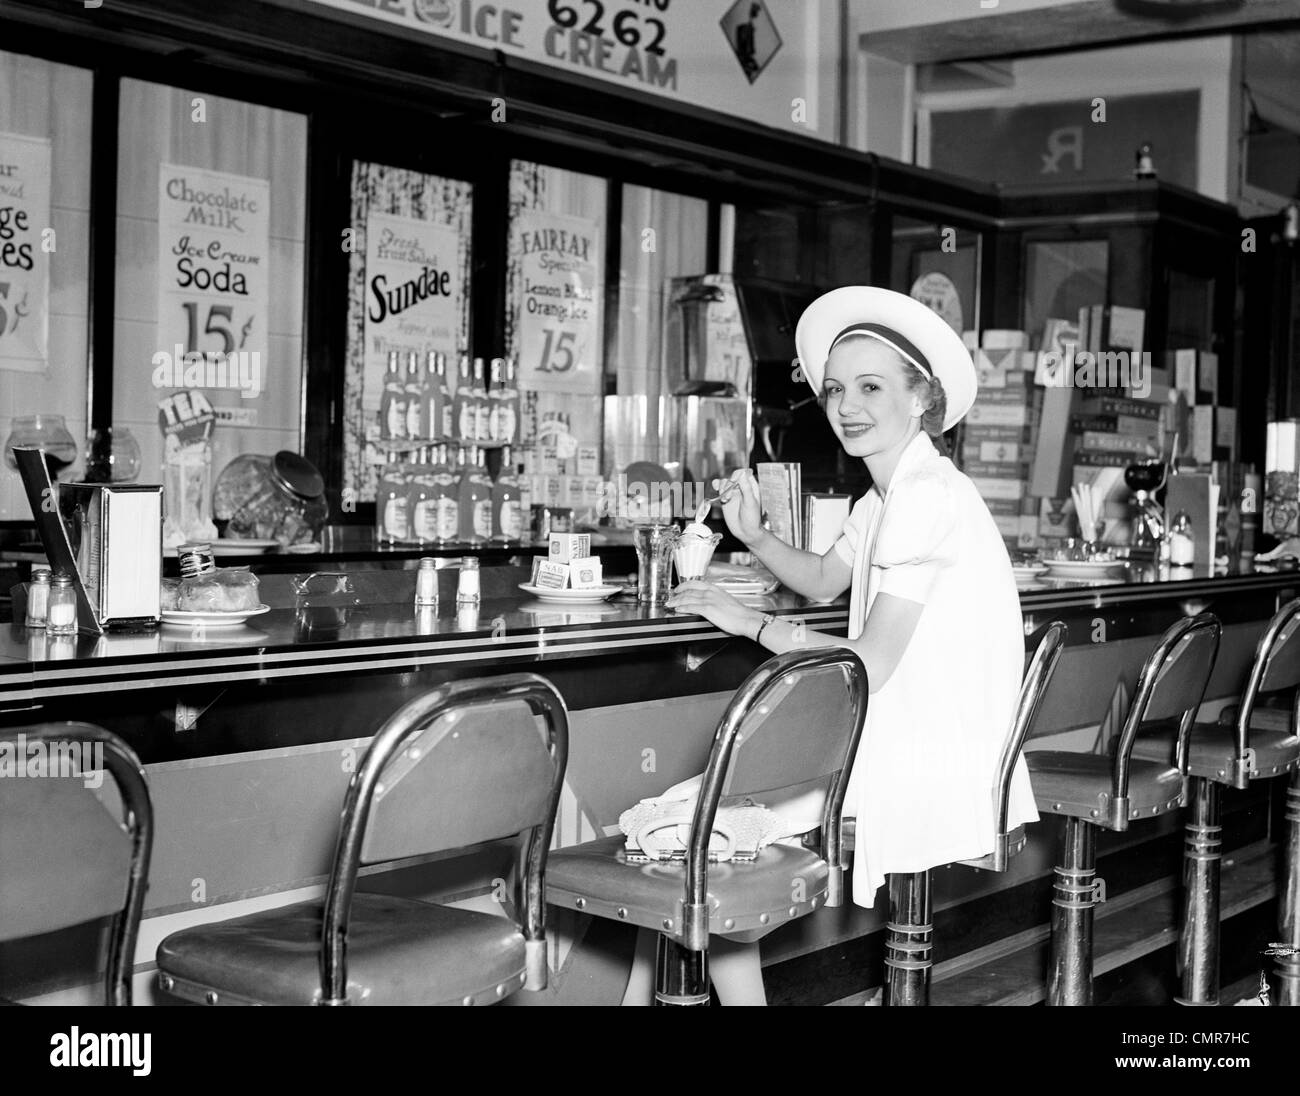 1930s WOMAN IN WHITE DRESS & HAT SITTING AT SODA FOUNTAIN COUNTER EATING ICE CREAM SUNDAE - Stock Image